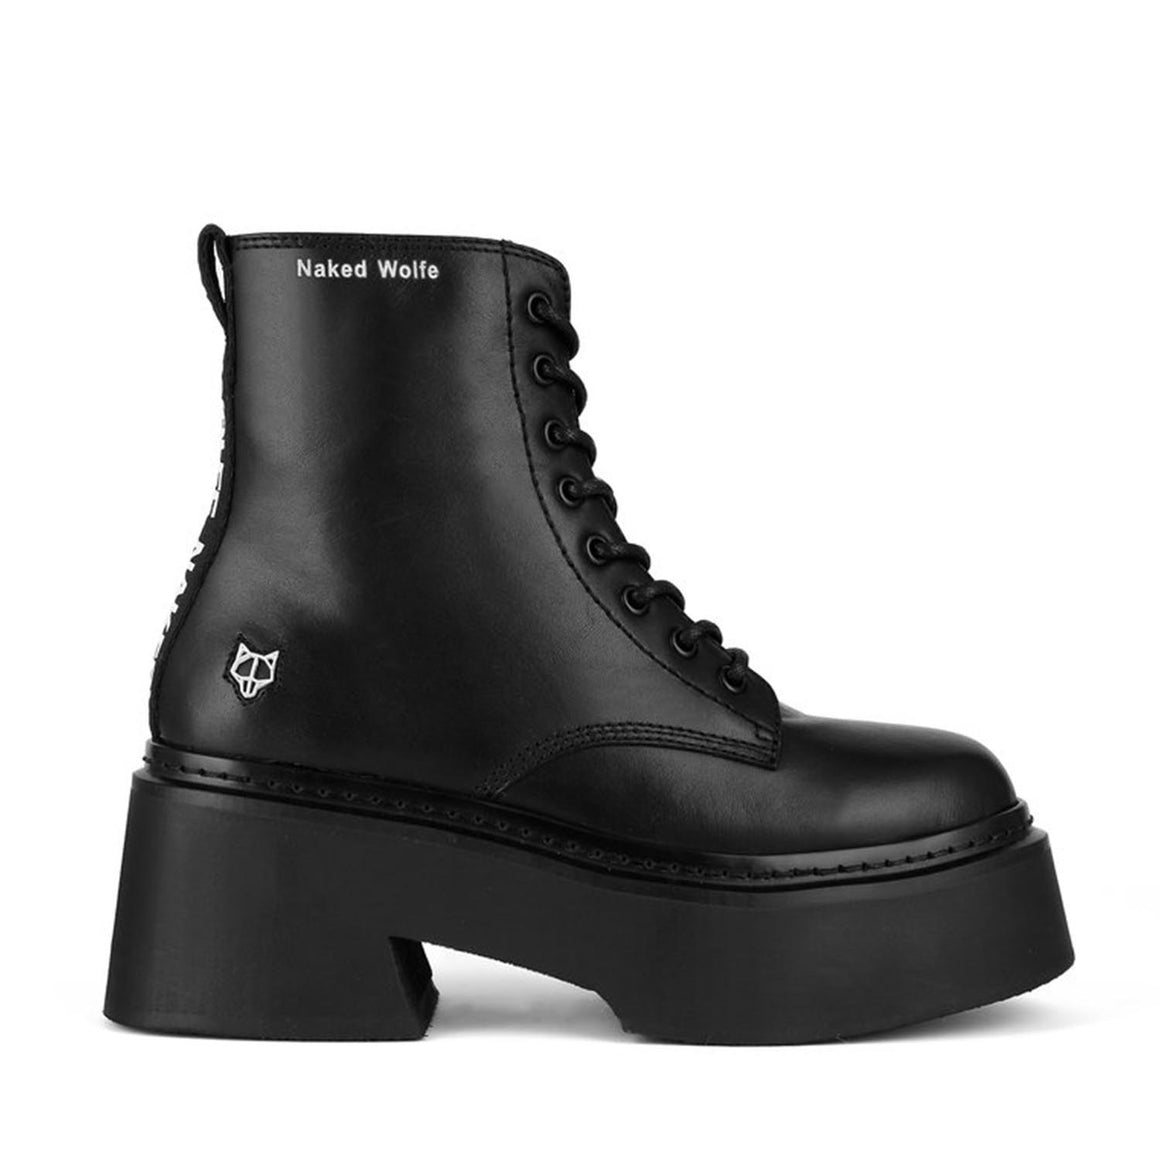 NAKED WOLFE MAYFAIR BLACK BOOTS